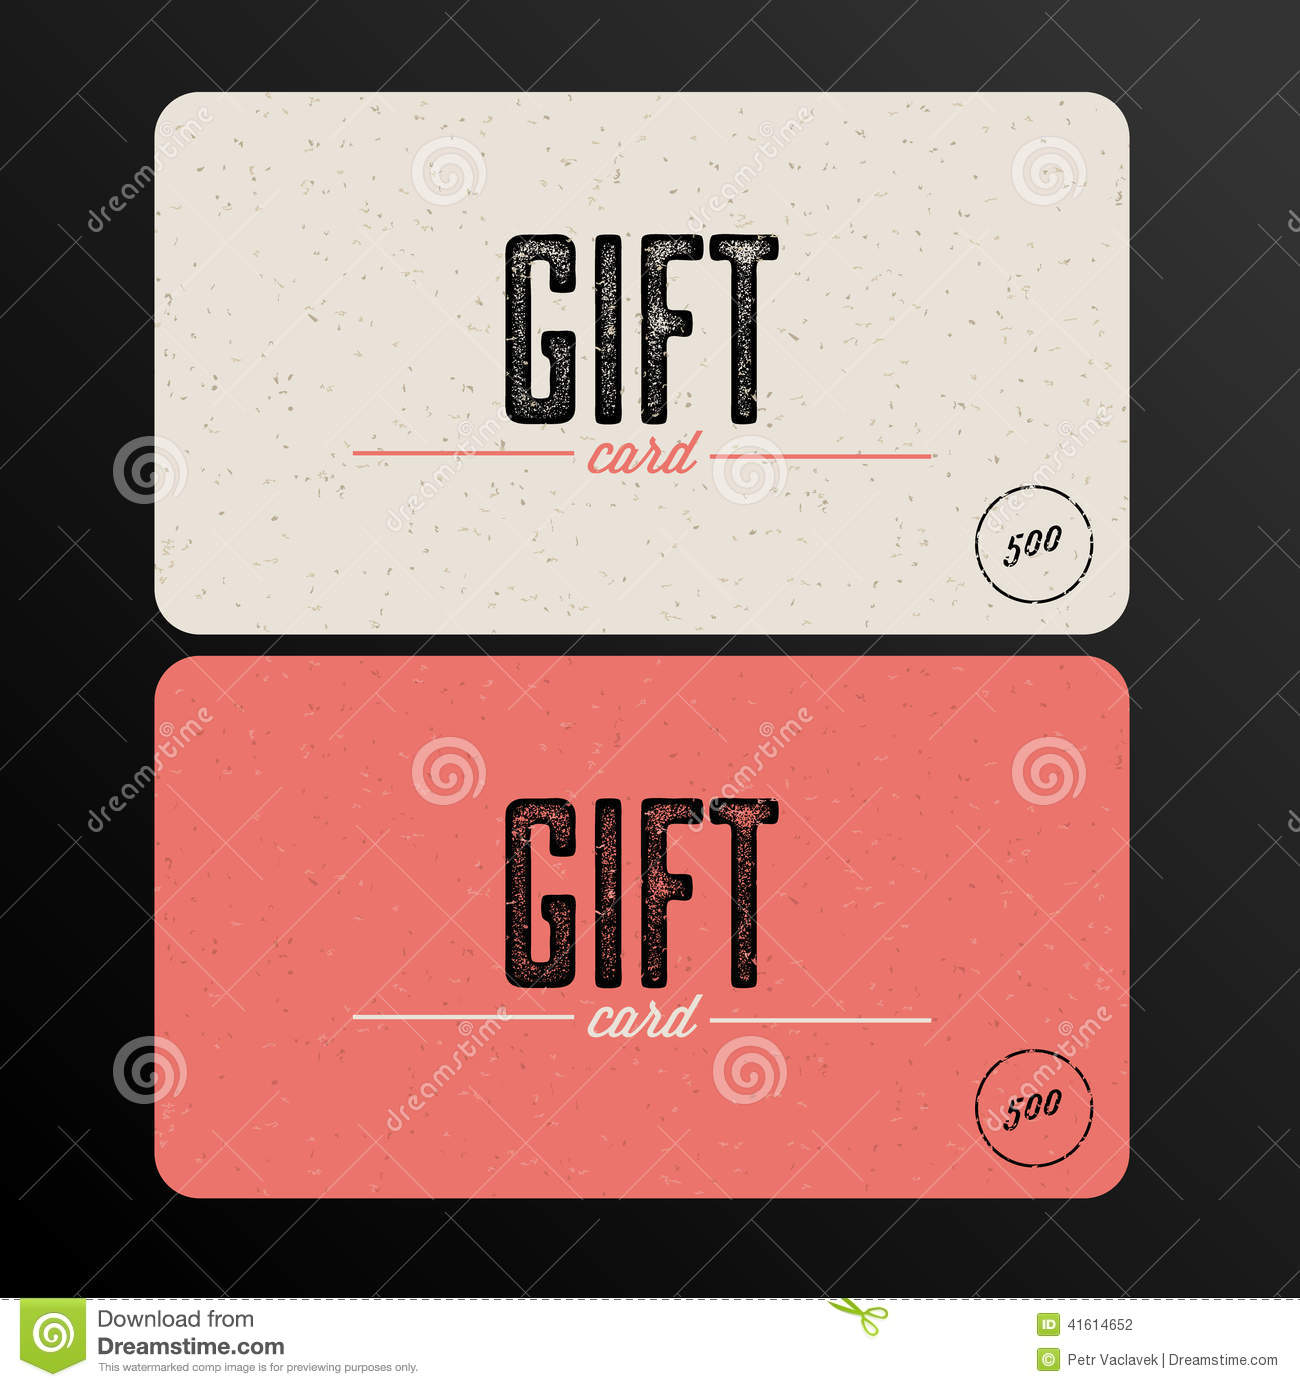 Retro Gift Card Template Stock Vector. Illustration Of Digital   41614652